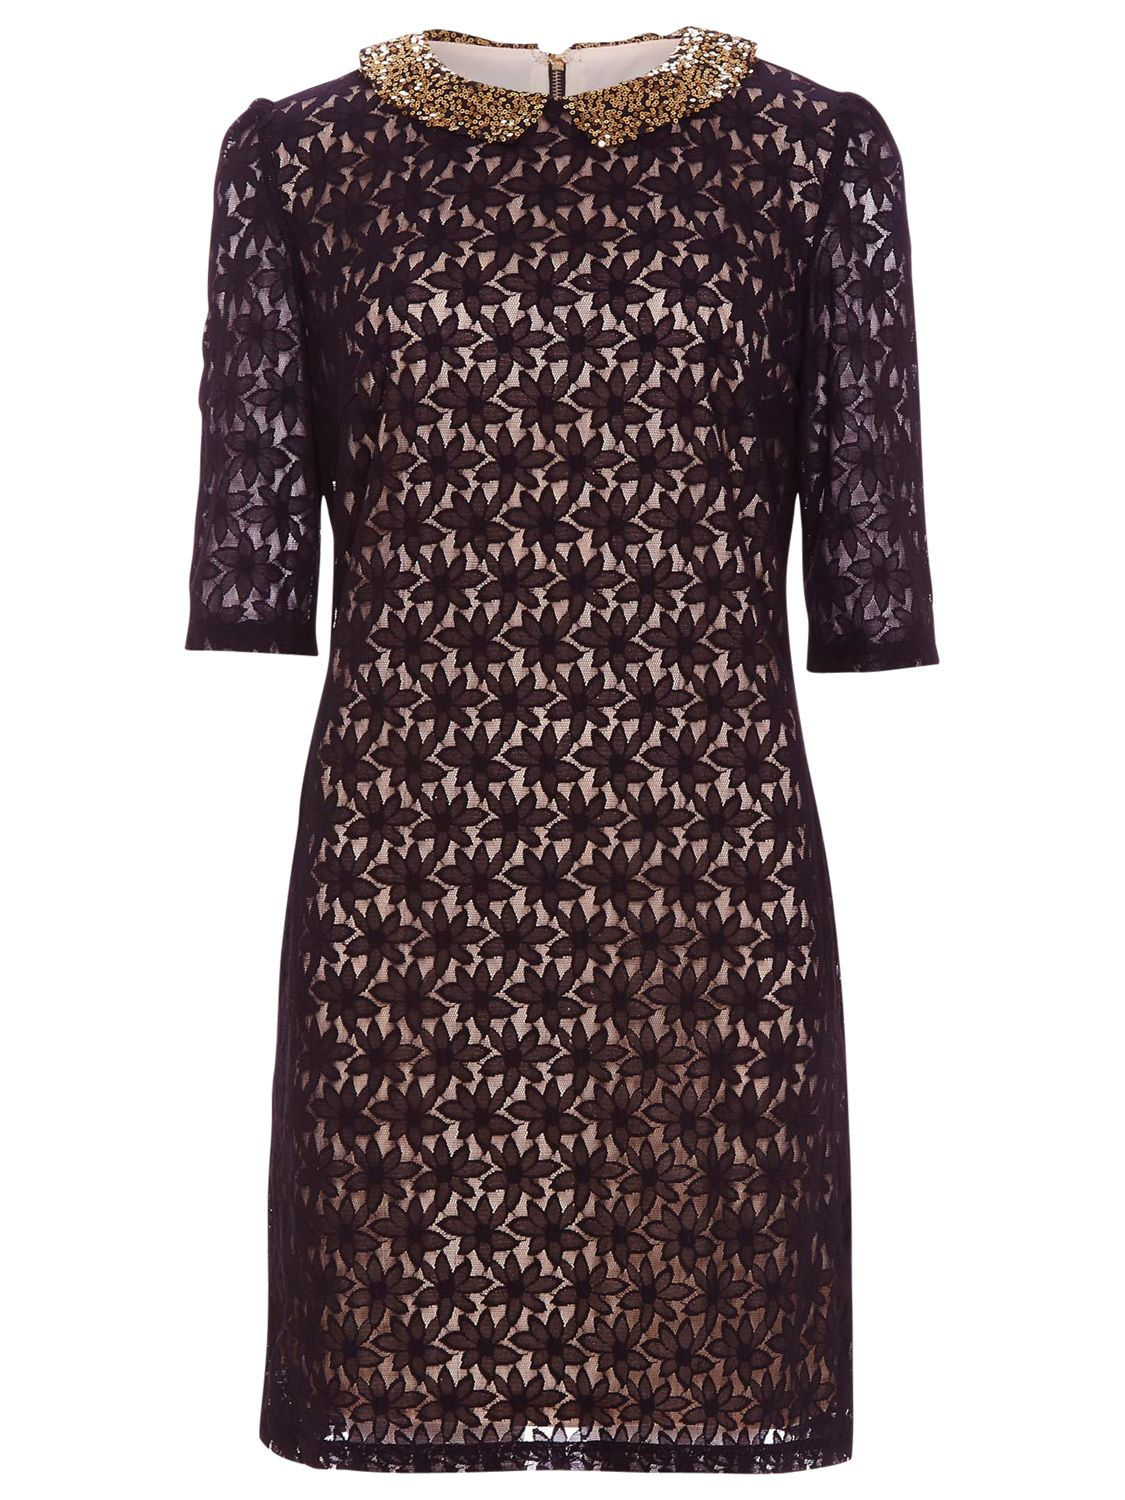 sugarhill boutique tilly dress black/beige, sugarhill, boutique, tilly, dress, black/beige, sugarhill boutique, xs|m|xl, clearance, womenswear offers, womens dresses offers, new years party offers, women, party outfits, lace dress, womens dresses, special offers, edition magazine, embellishment, 1765652